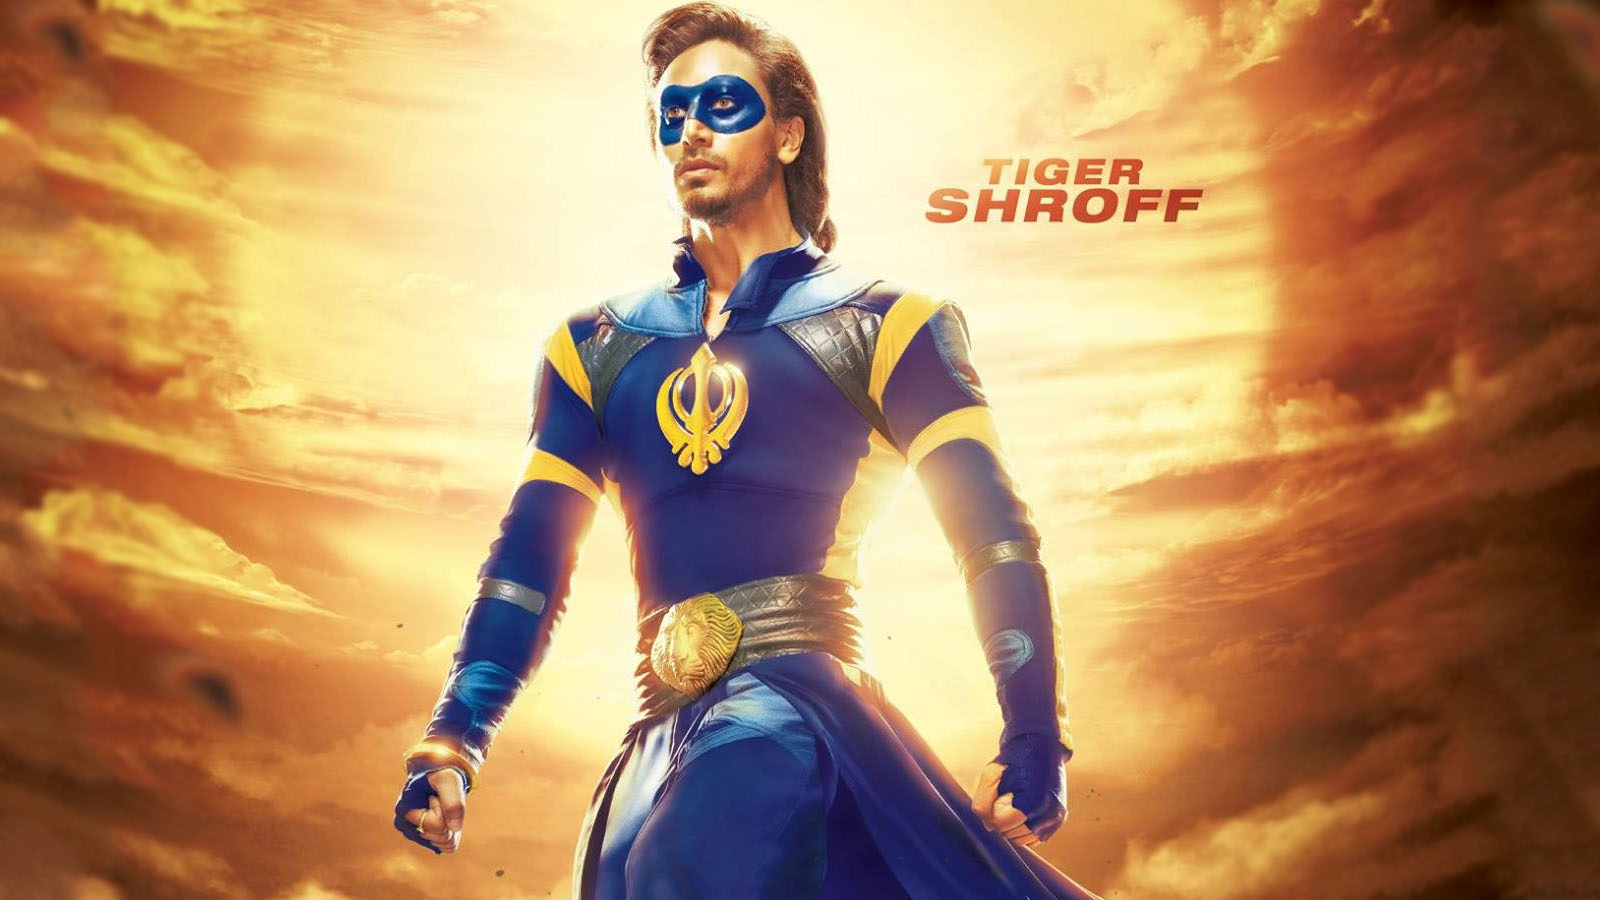 Wallpaper download jat -  Wallpaper Hd Flying Jatt 2015 1600 X 900 Download Close